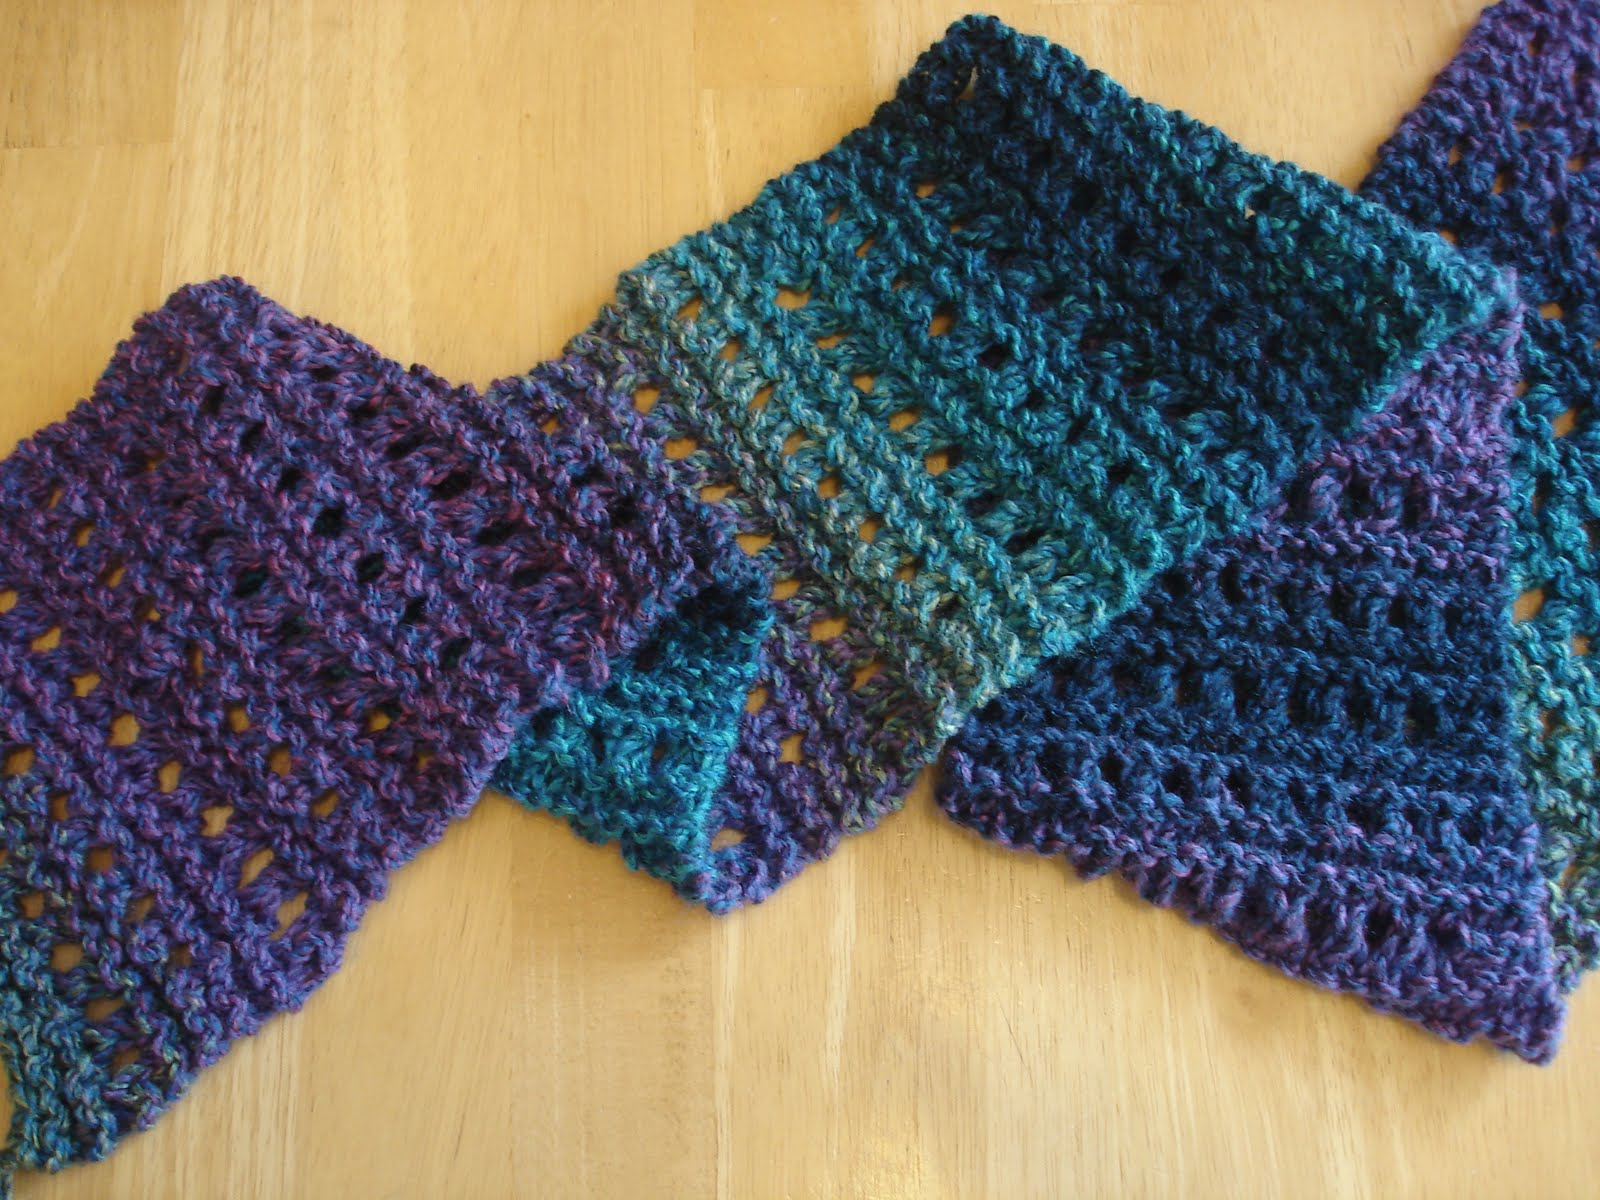 Knitting Patterns Free : Fiber Flux: Free Knitting Pattern: Tweedy Eyelet Scarf!